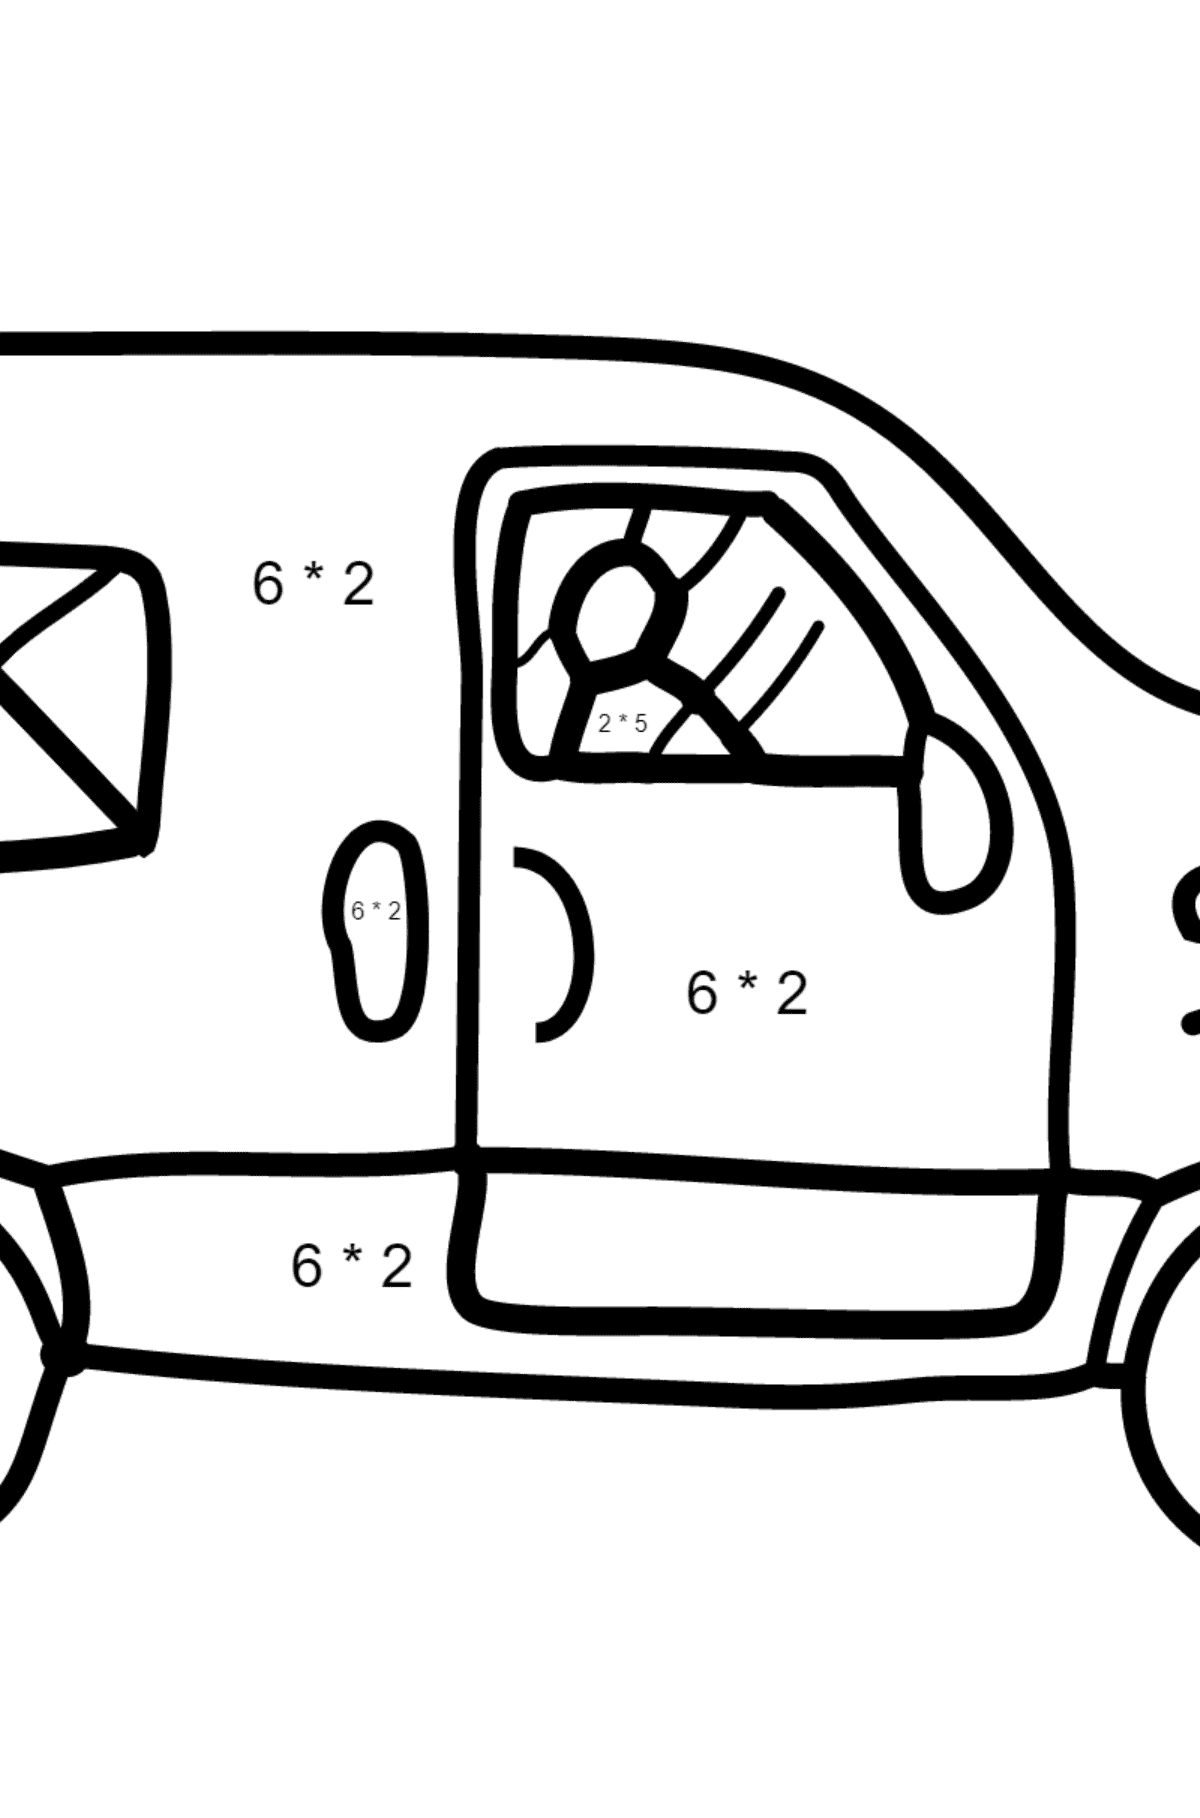 Coloring Page - A Car is Carrying Mail - Math Coloring - Multiplication for Children